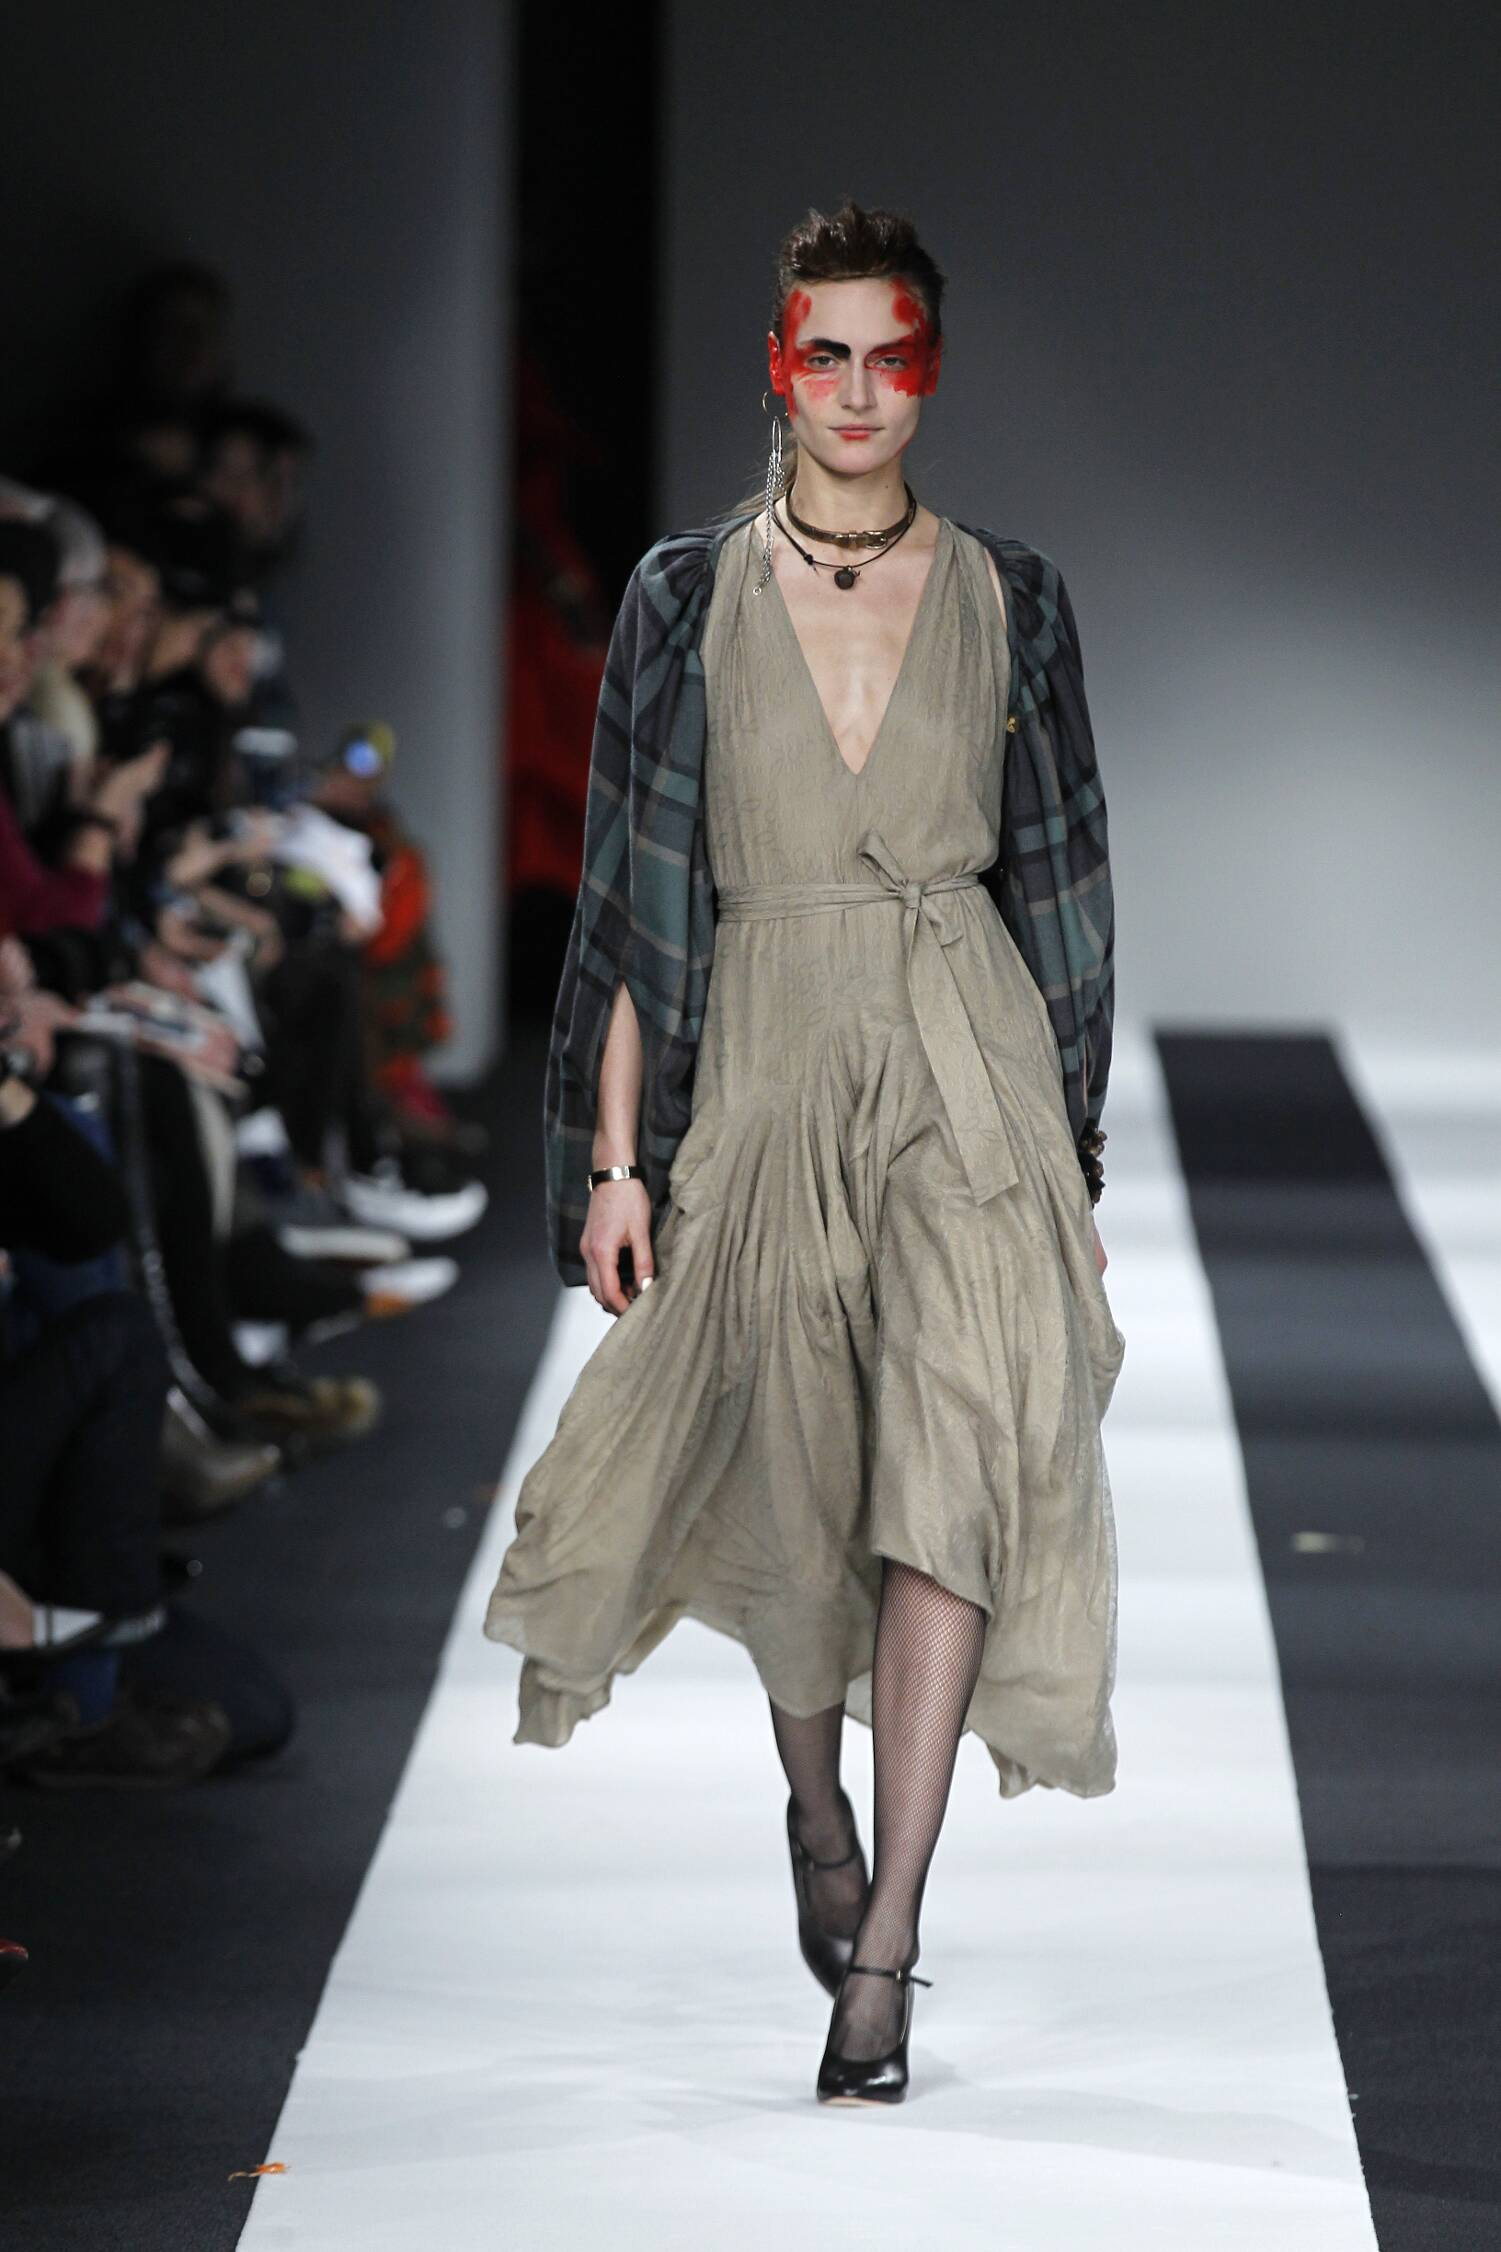 Catwalk Vivienne Westwood Red Label Collection Fashion Show Winter 2015